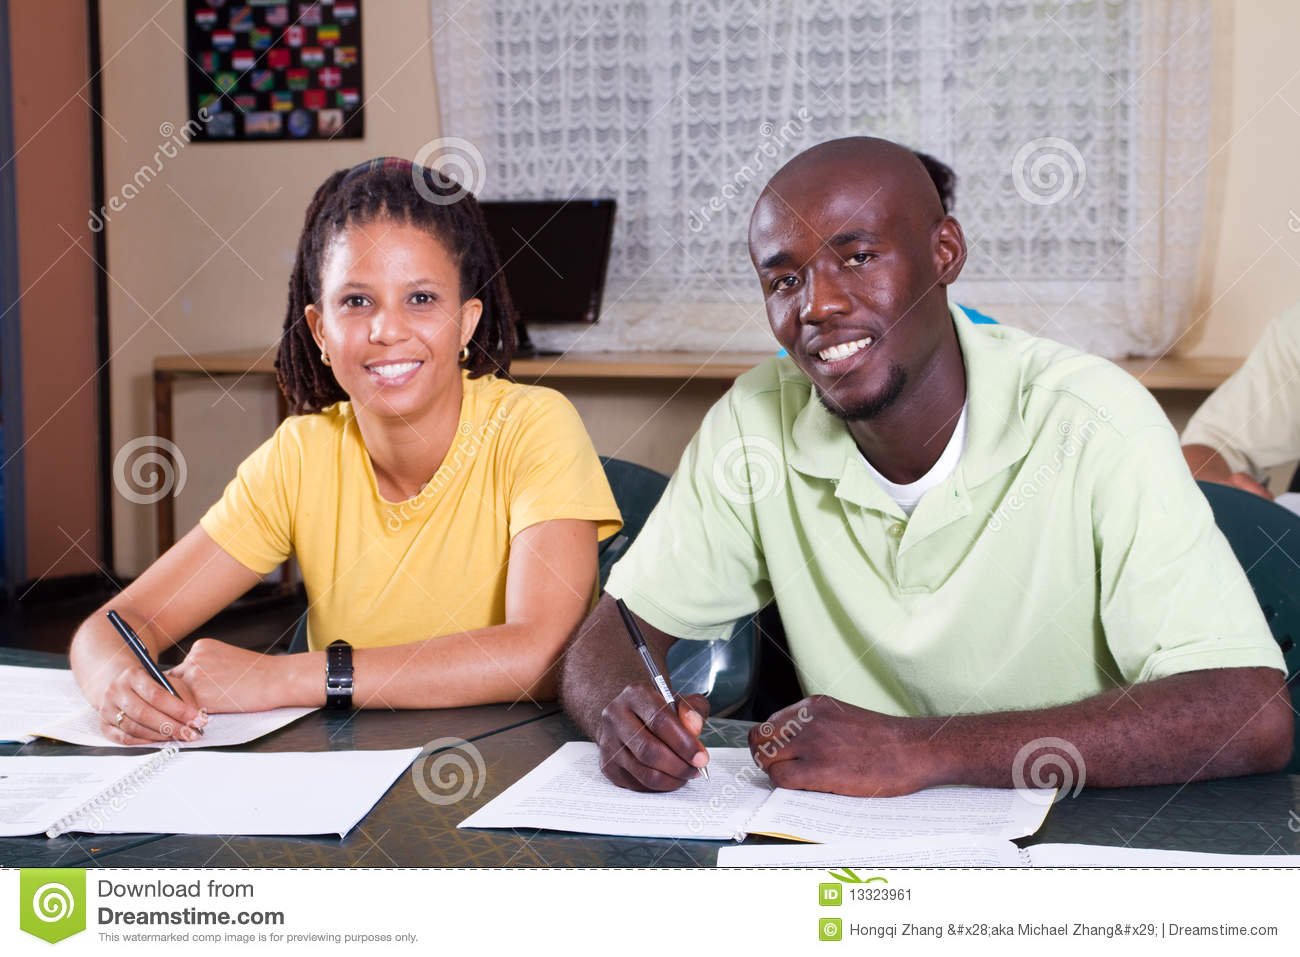 Confidence adult education